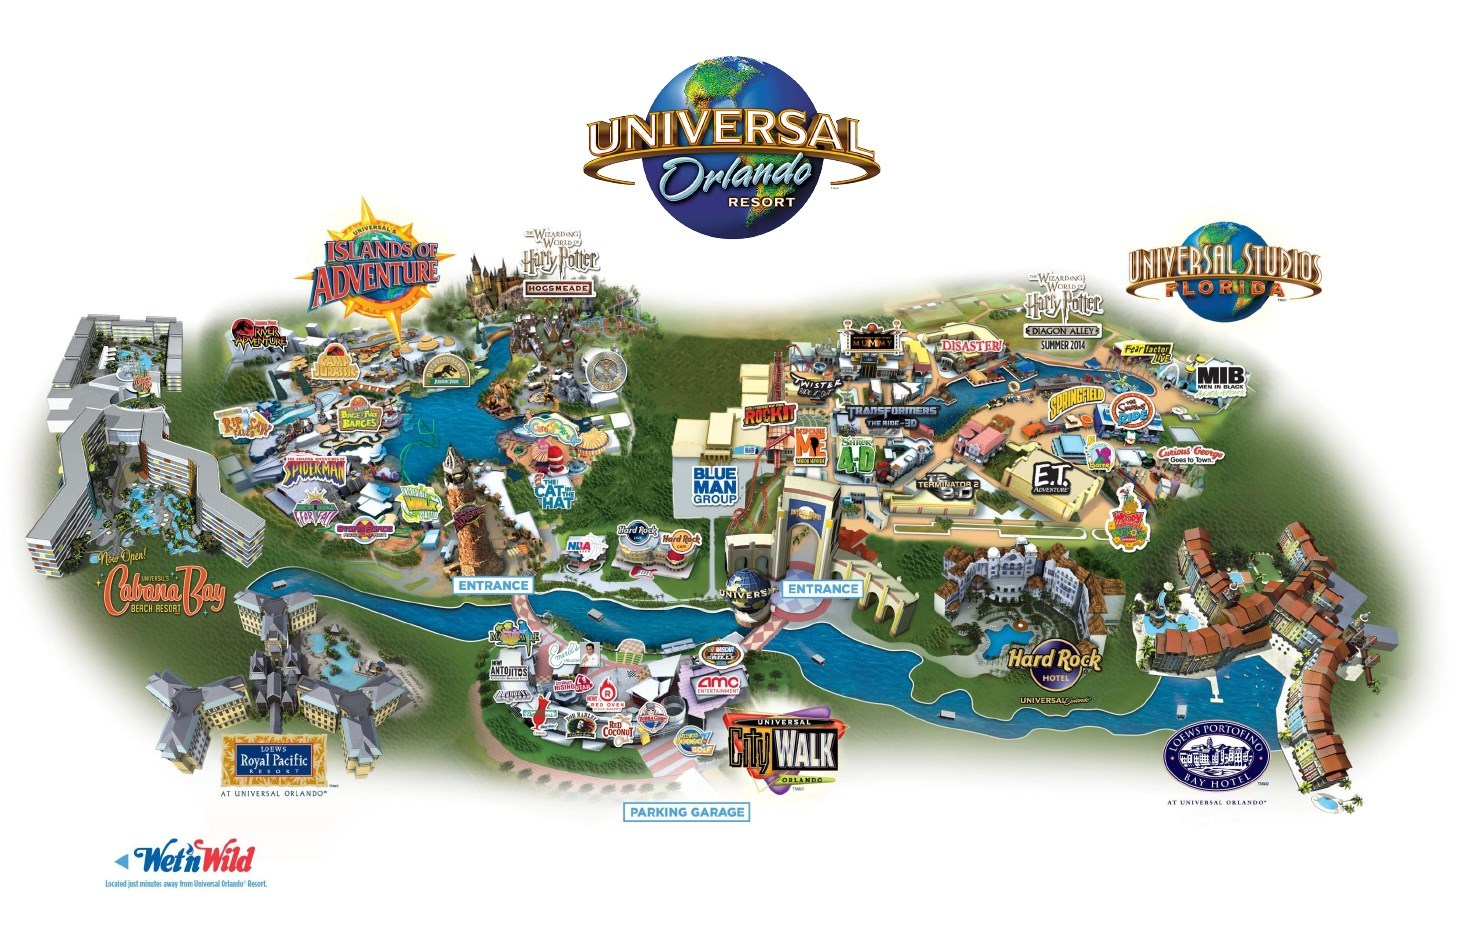 Exclusive Benefits For On Site Universal Resort Hotel Guests